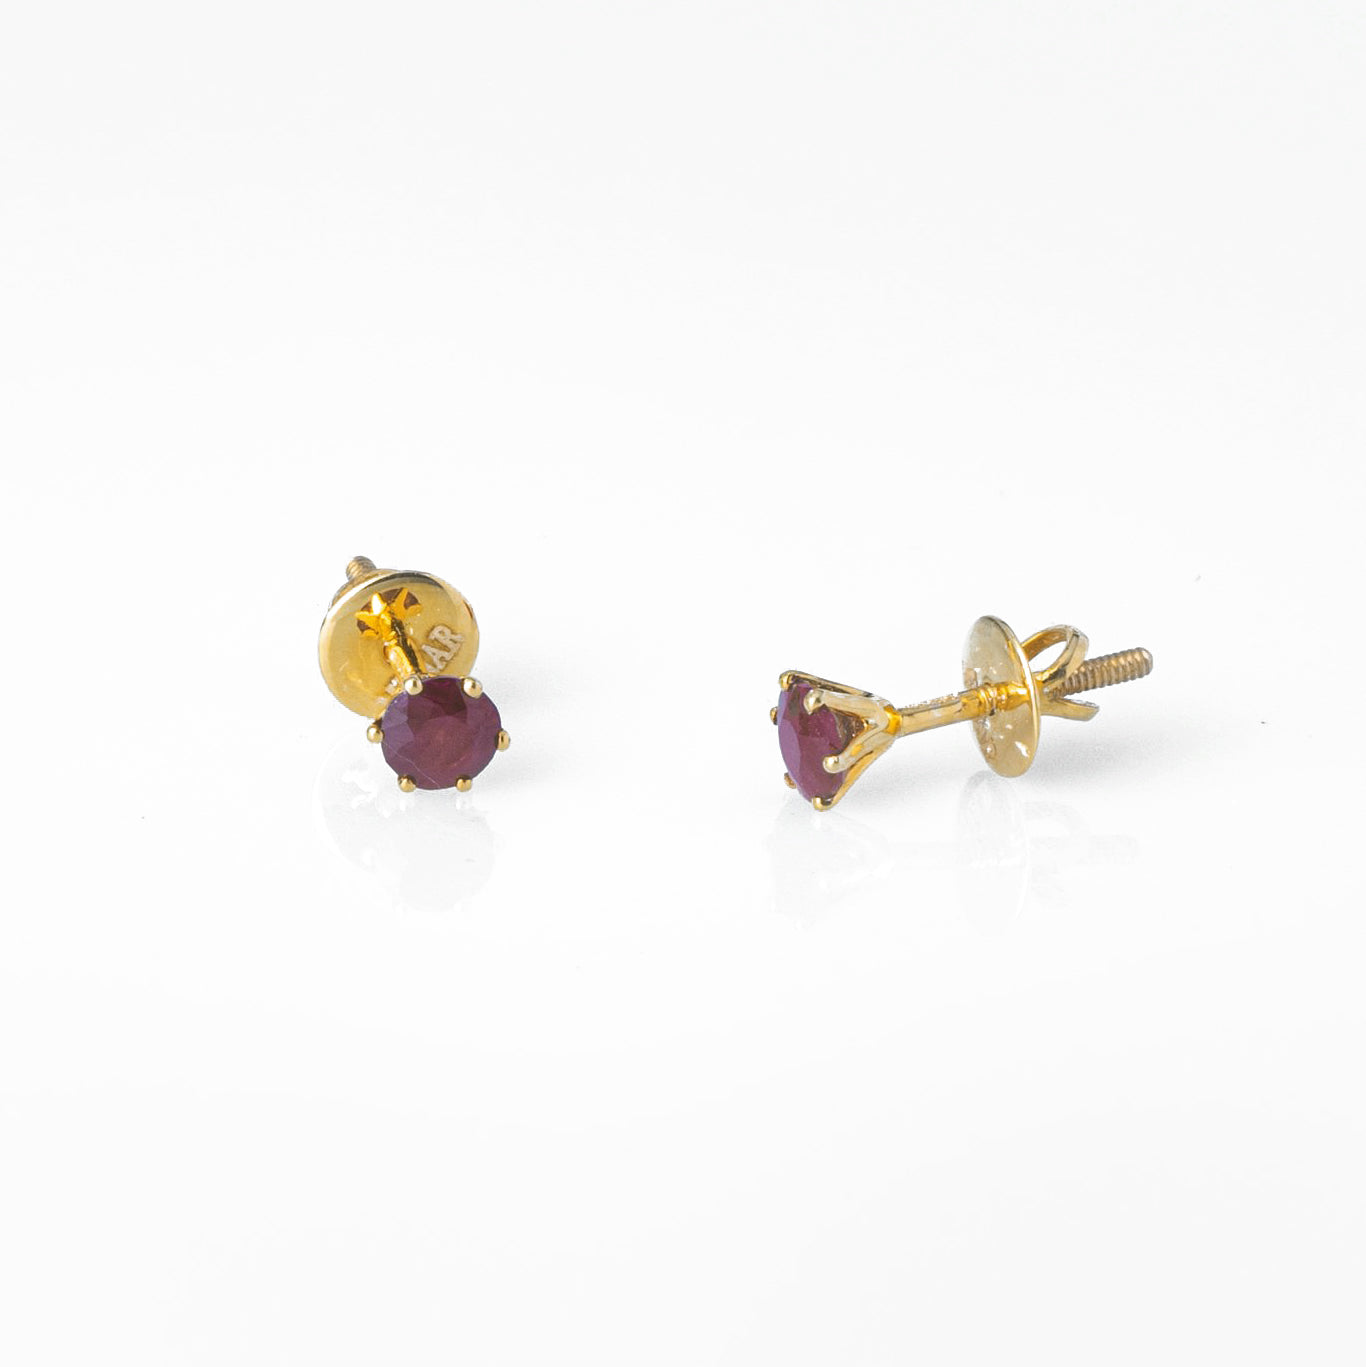 18ct Yellow Gold 0.58ct Round Brilliant Cut Ruby Stud Earrings (MCS3116)